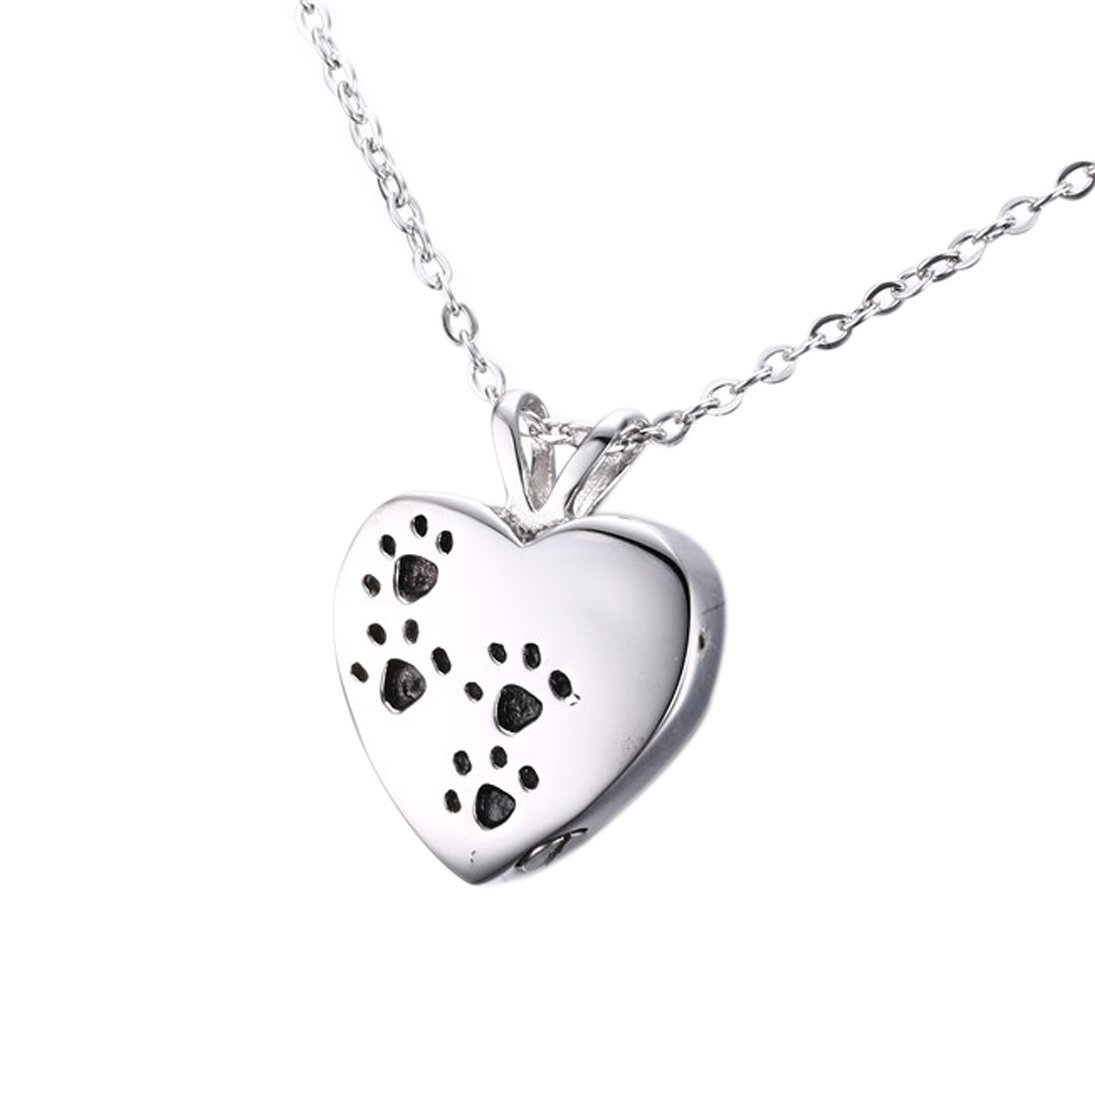 Memorable Paws on Heart Shape Pendant Urn for Ashes, Cremation Keepsake Jewelry Necklace